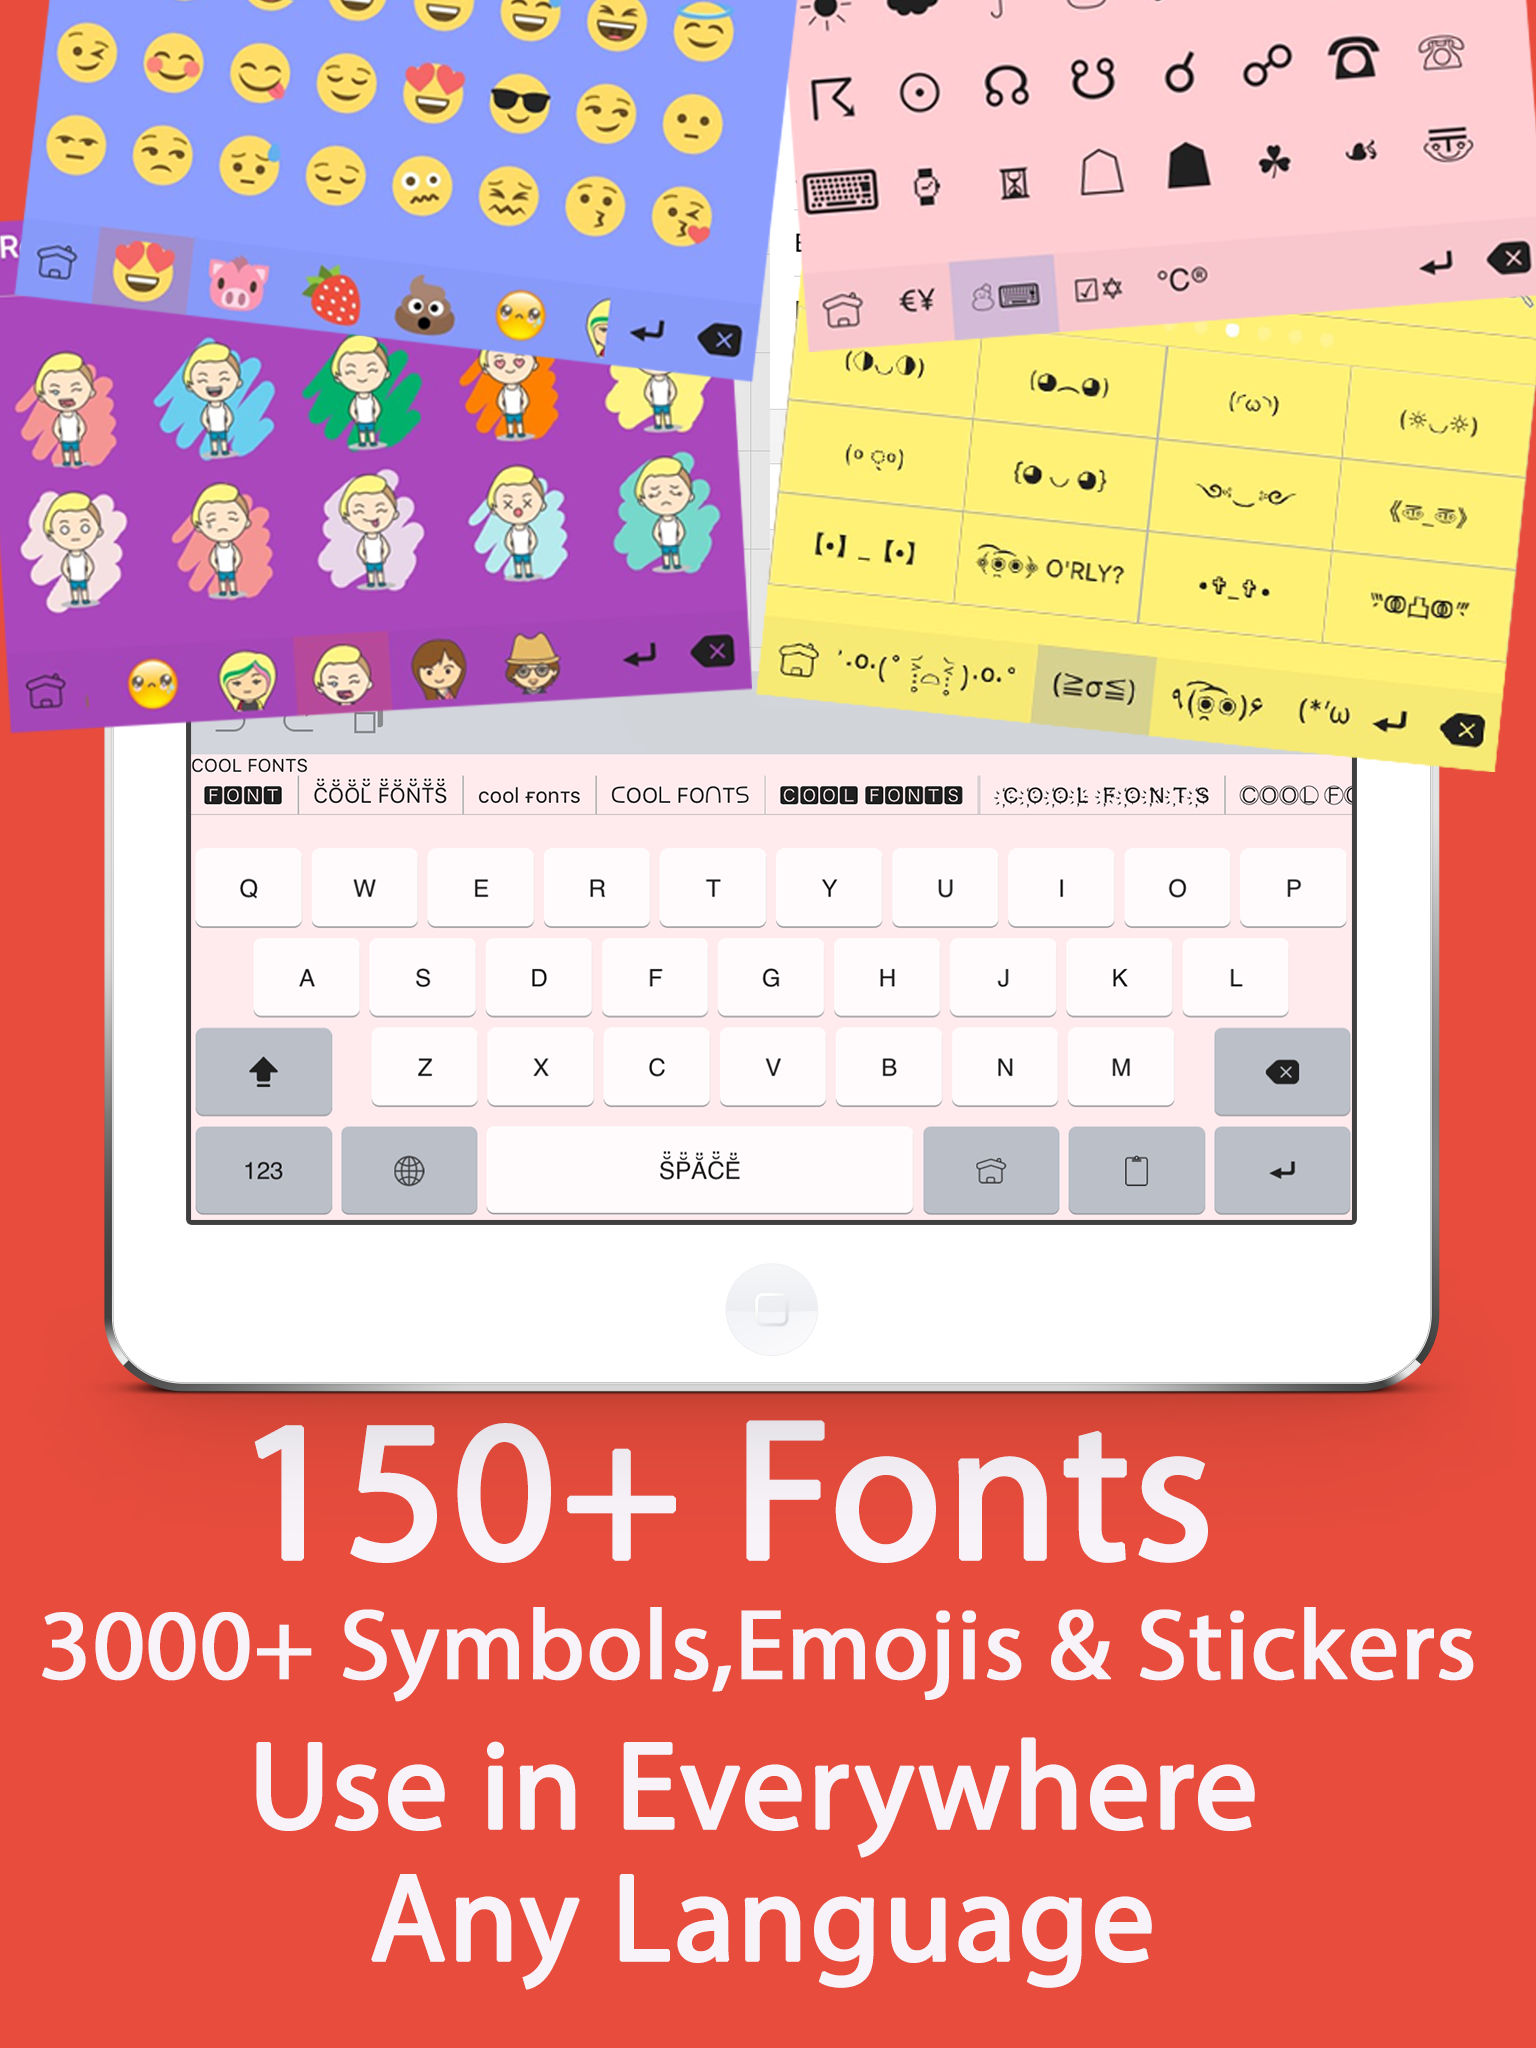 Color fonts keyboard keyboards with cool font emoji for app description biocorpaavc Choice Image